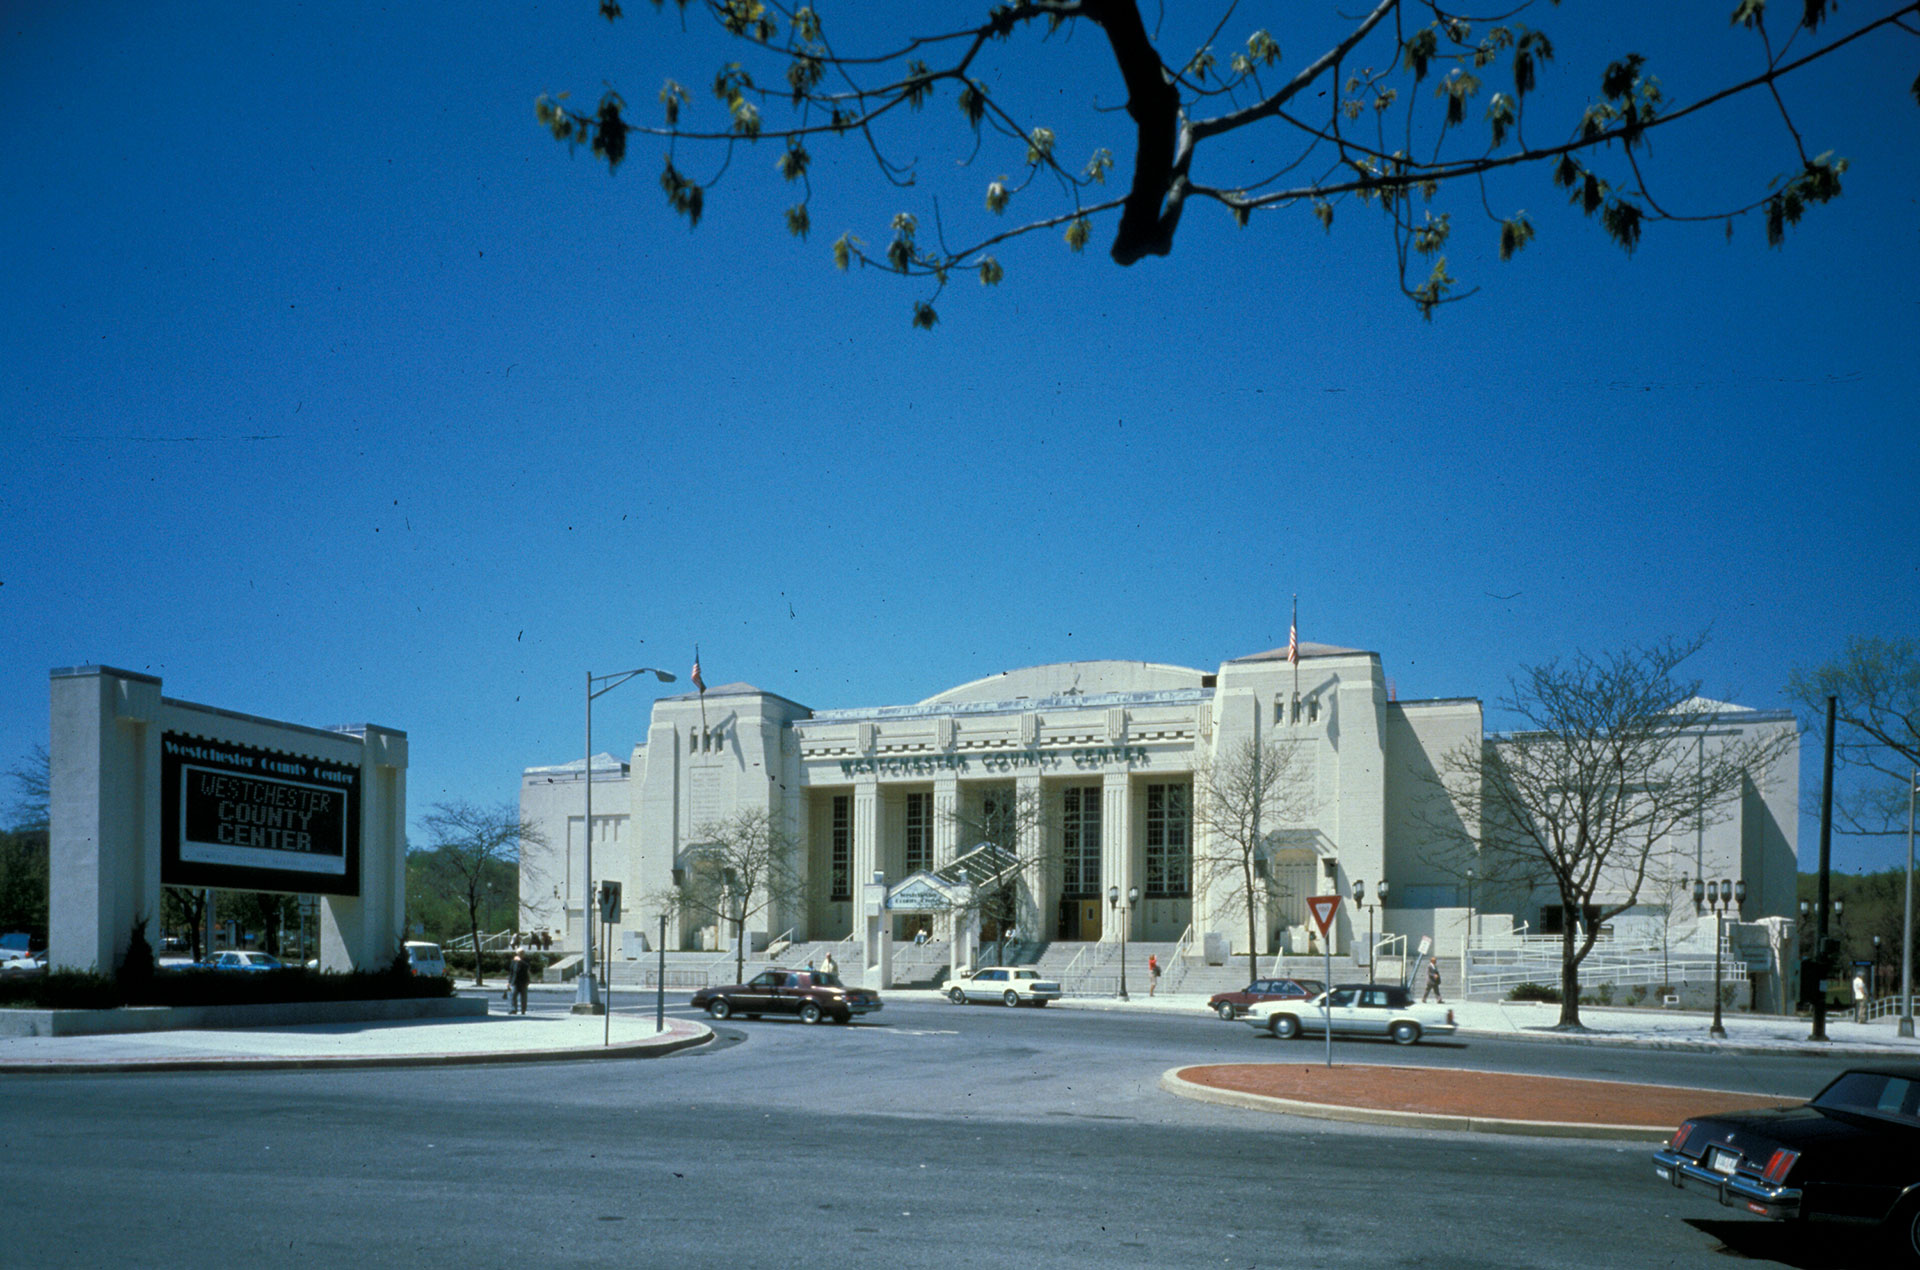 Westchester County Center in White Plains, New York